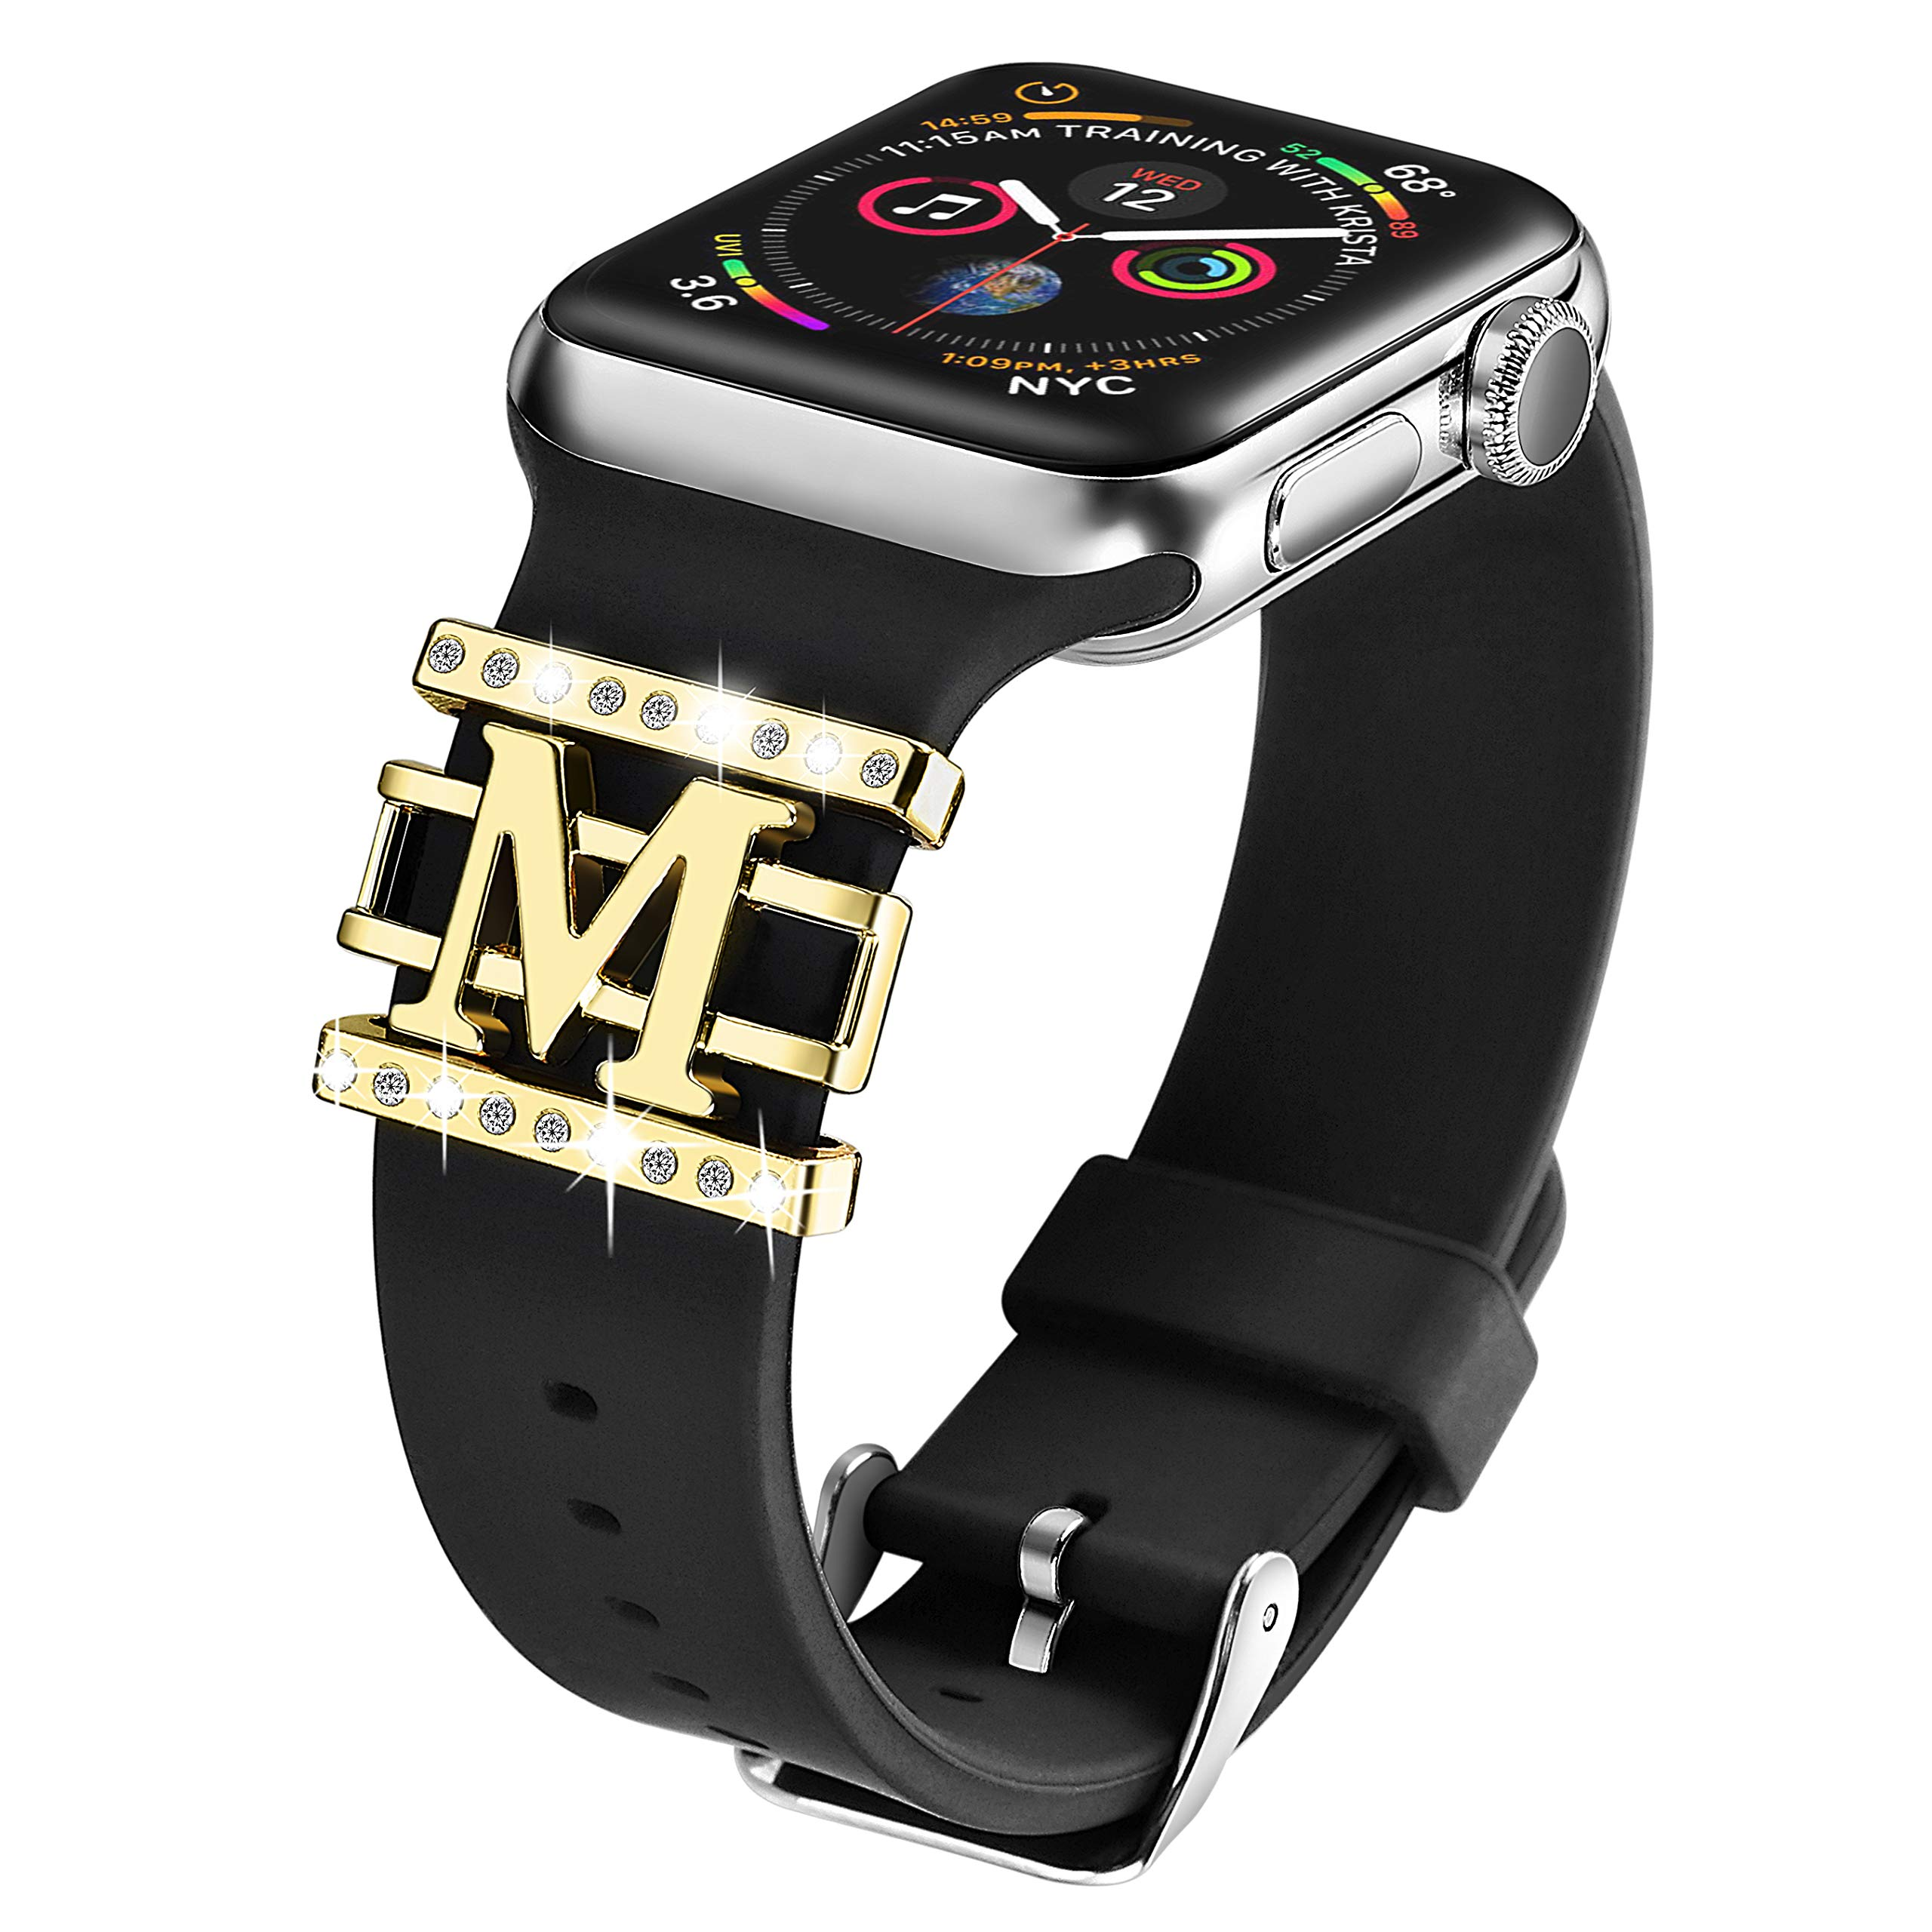 Compatible with Apple Watch Band Silicone 38mm 40mm,DMMG Apple Watch Band Accessories Decorative Rings Designed Pattern Watch Band Women,Replacement Apple Watch Band/iwatch Series 4 3 2 1(Black)